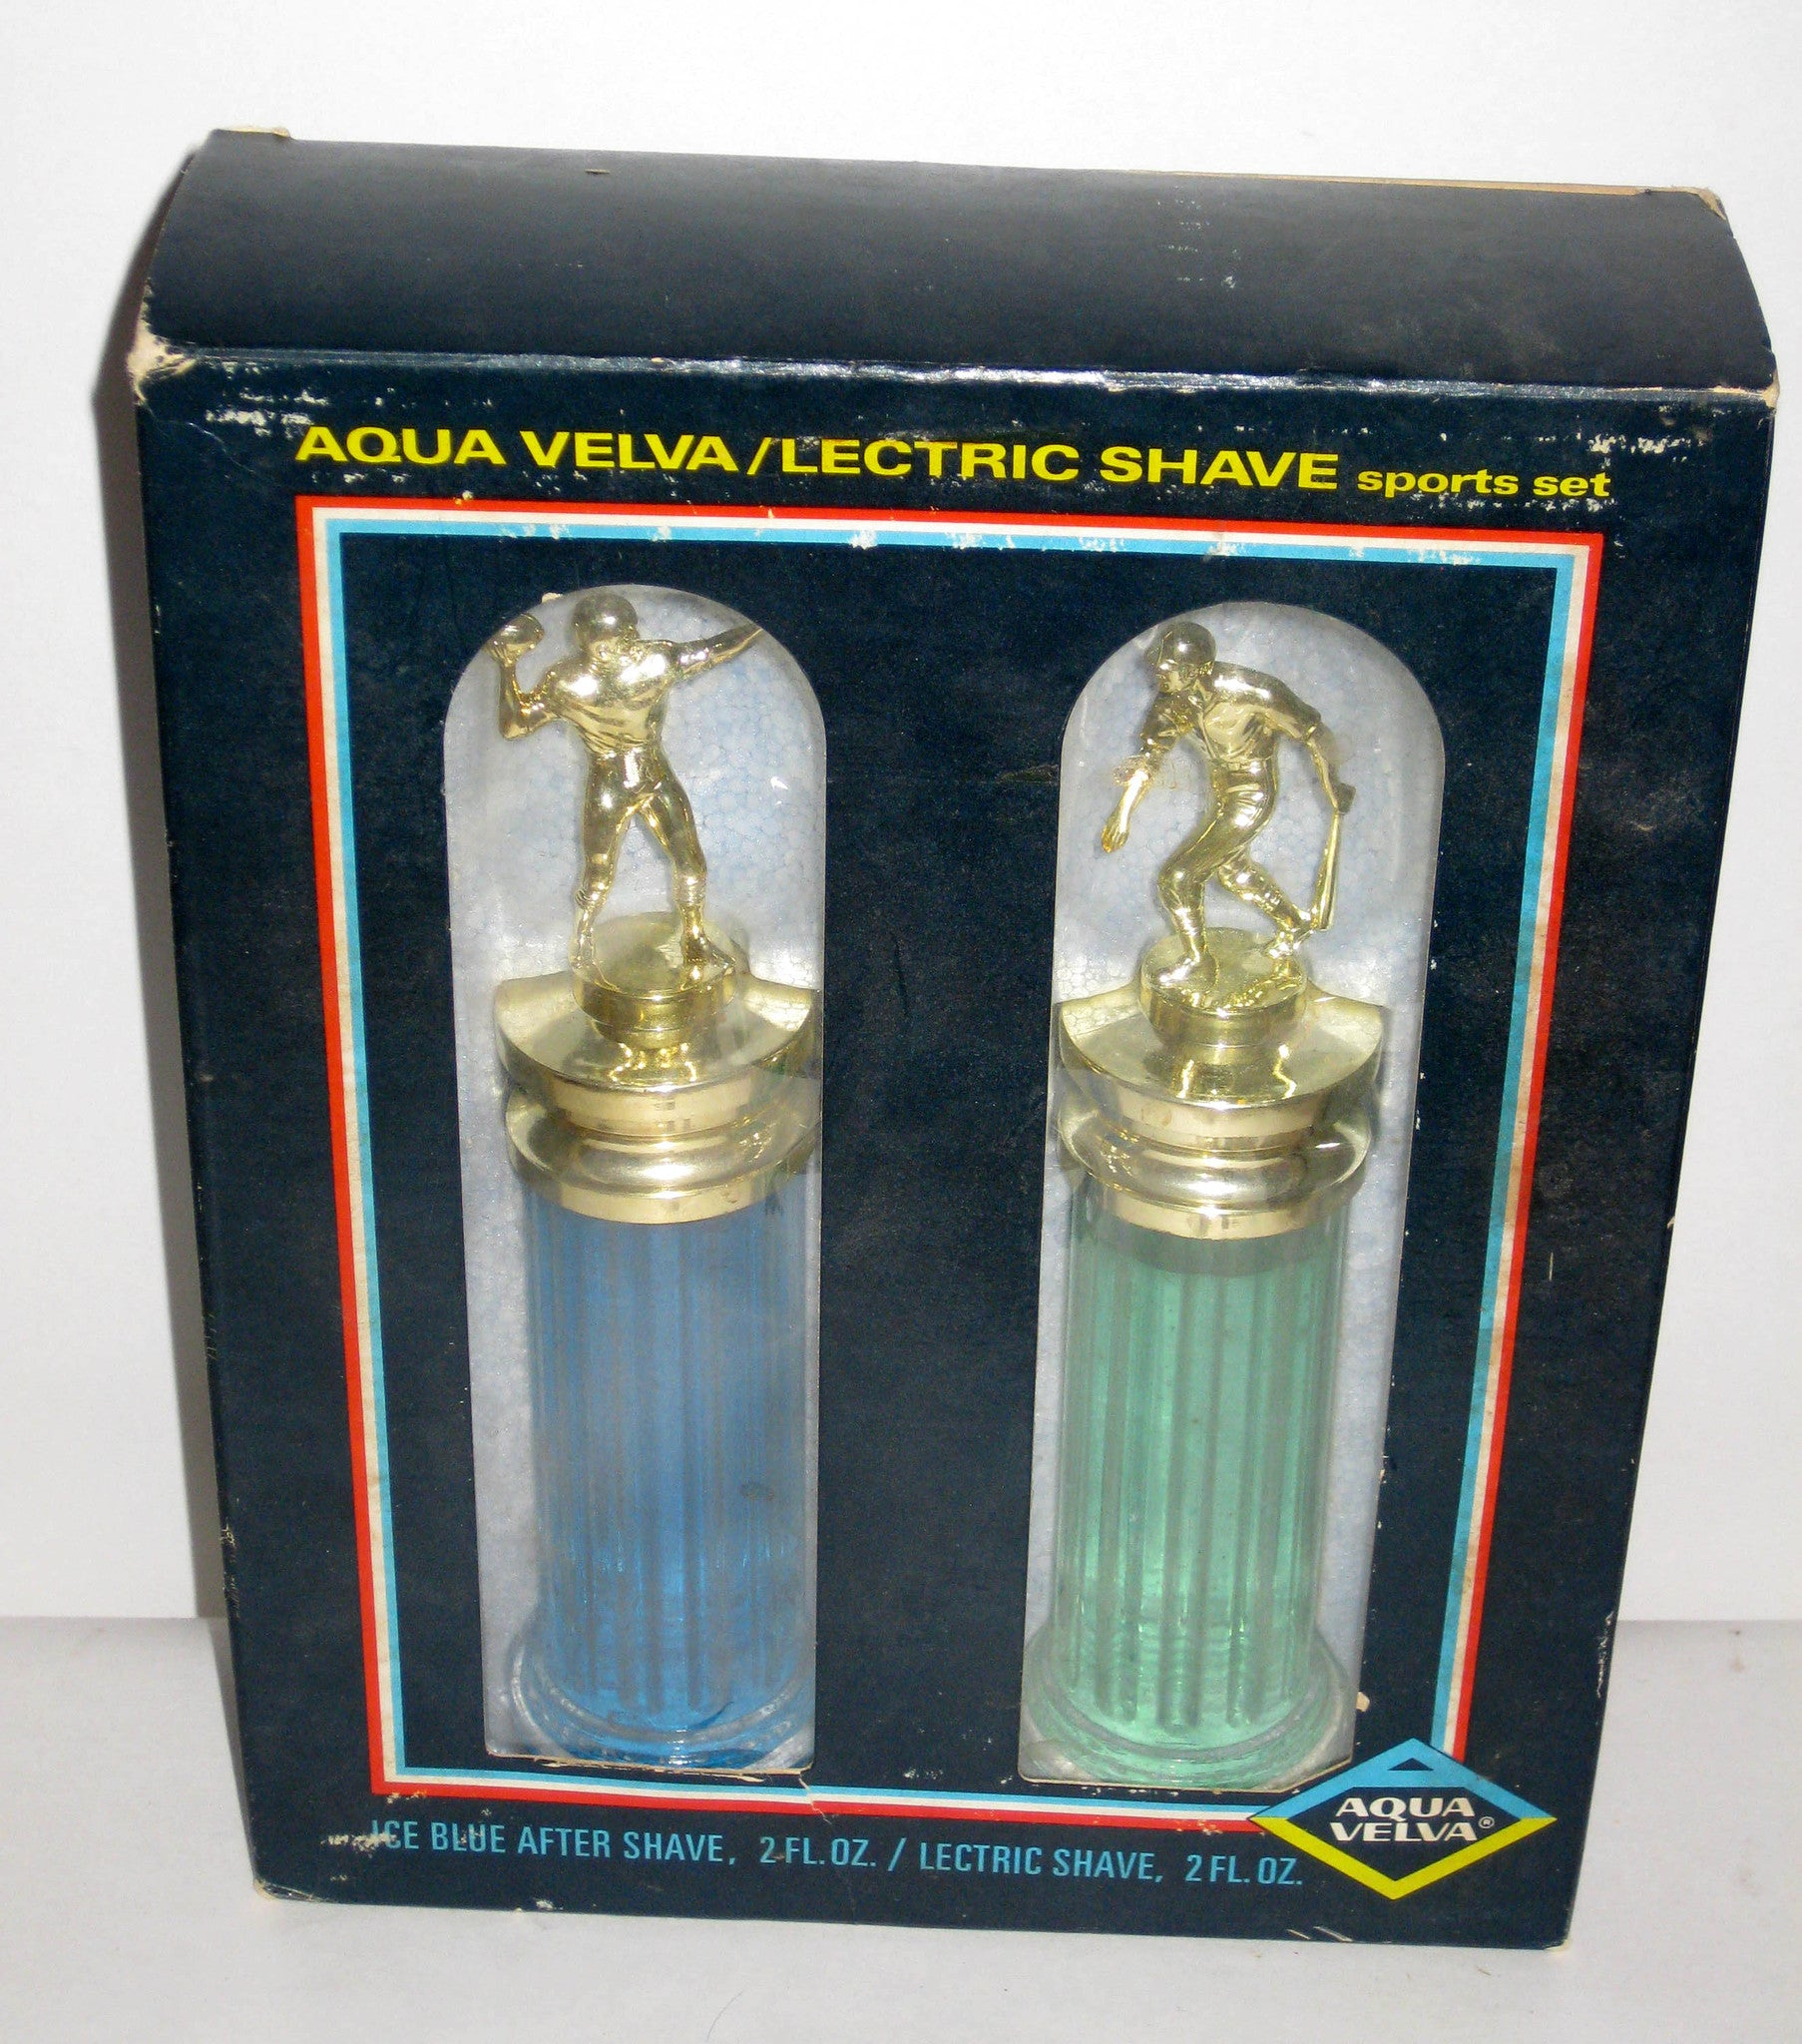 Aqua Velva Lectric Shave Sports Set